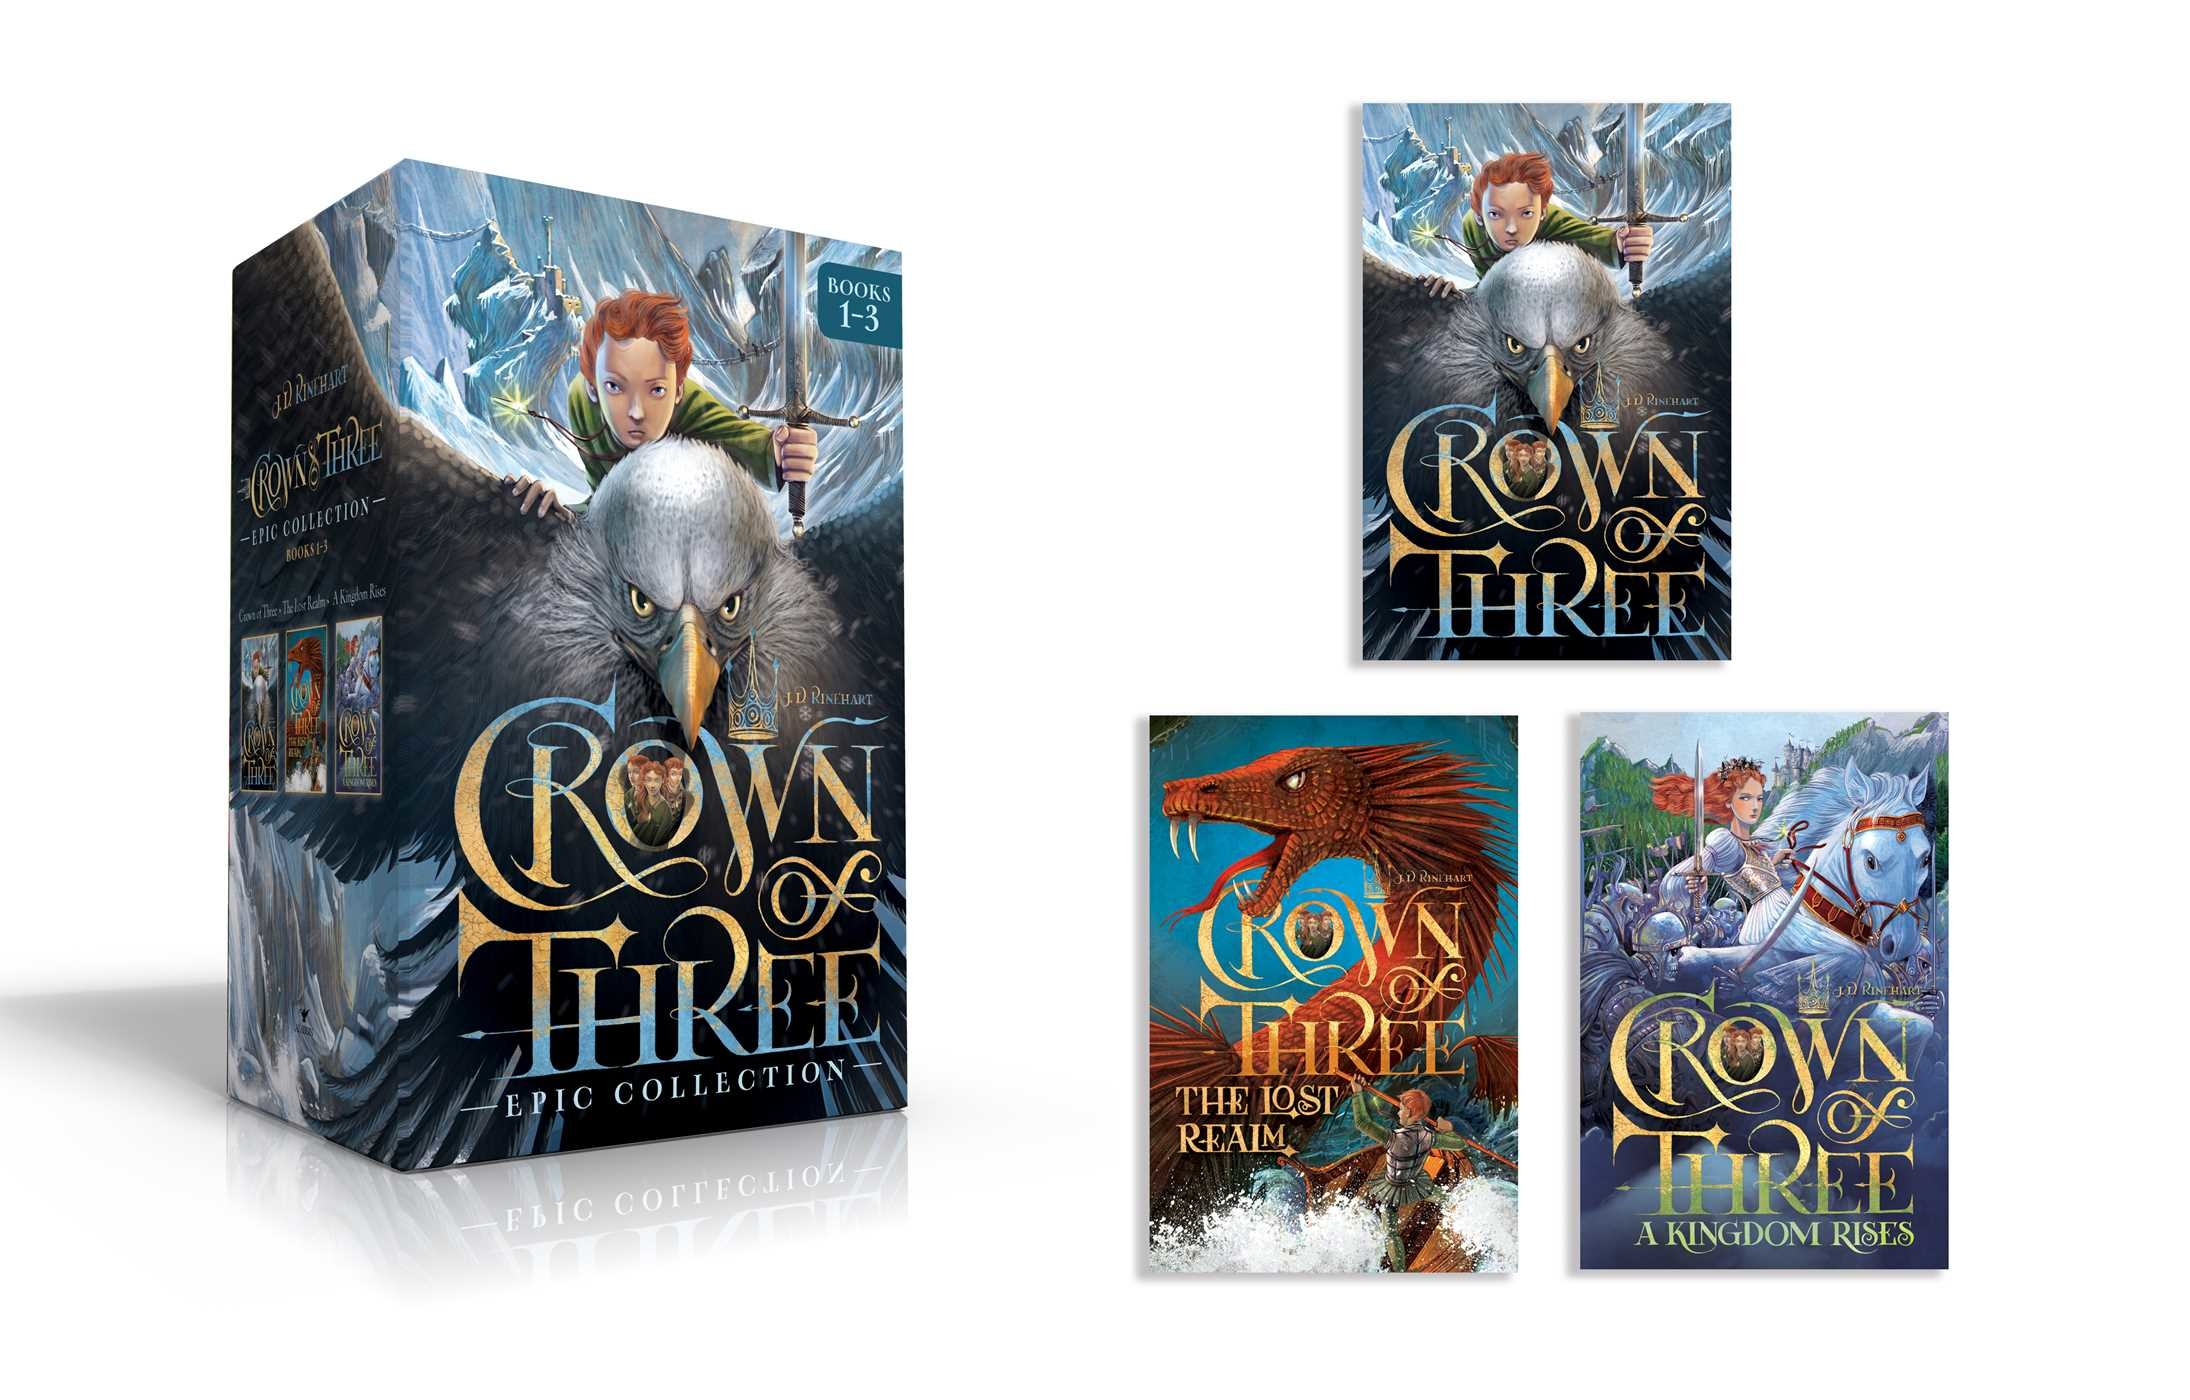 Crown of three epic collection books 1 3 9781534400320.in01